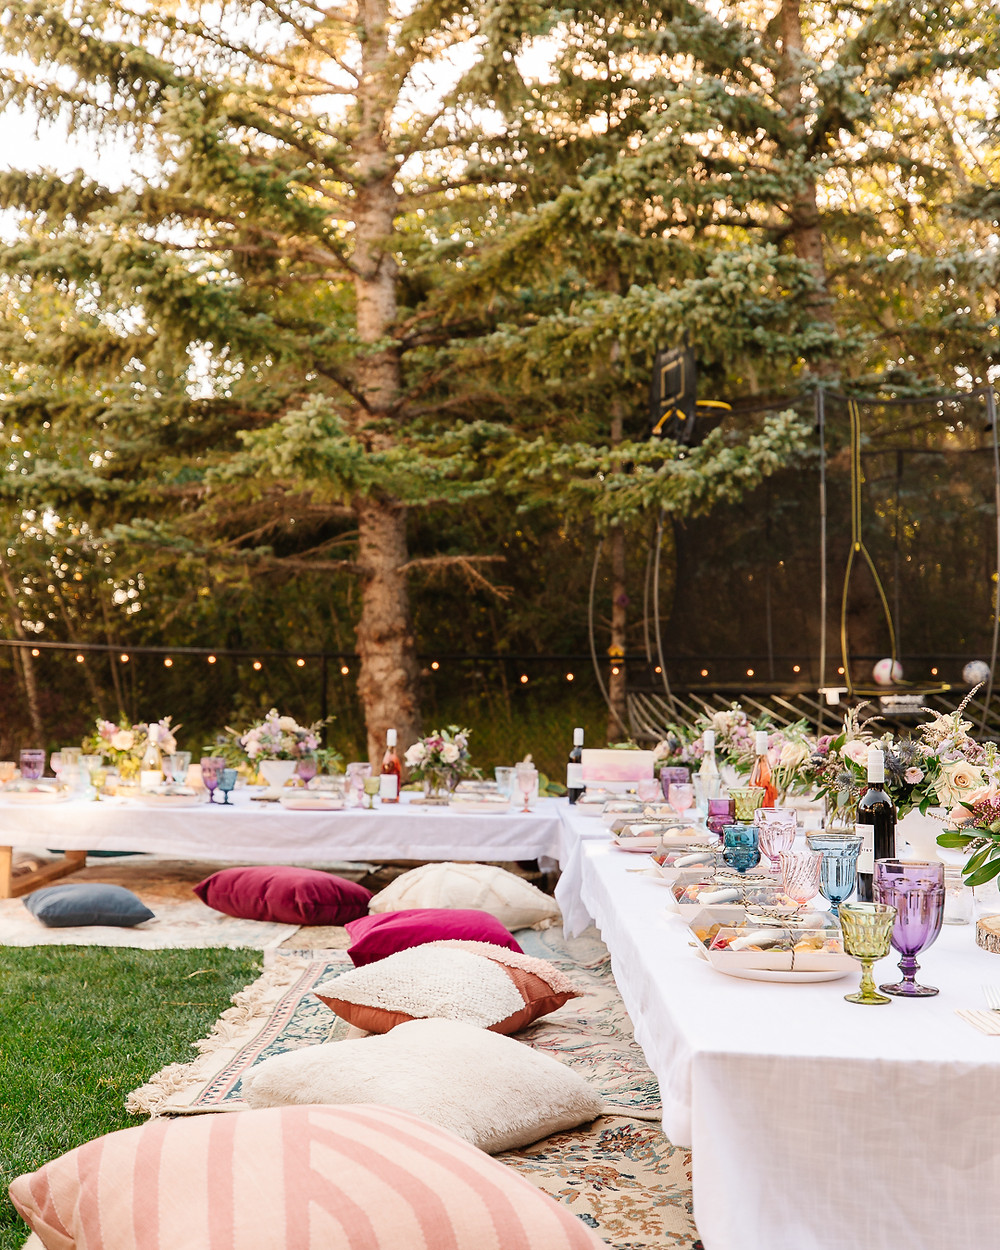 An evening backyard boho garden party with gorgeous flowers, throw pillows, vintage rugs, charcuterie wine, twinkle lights, coloured glasses, boho decor and all your best girlfriends.